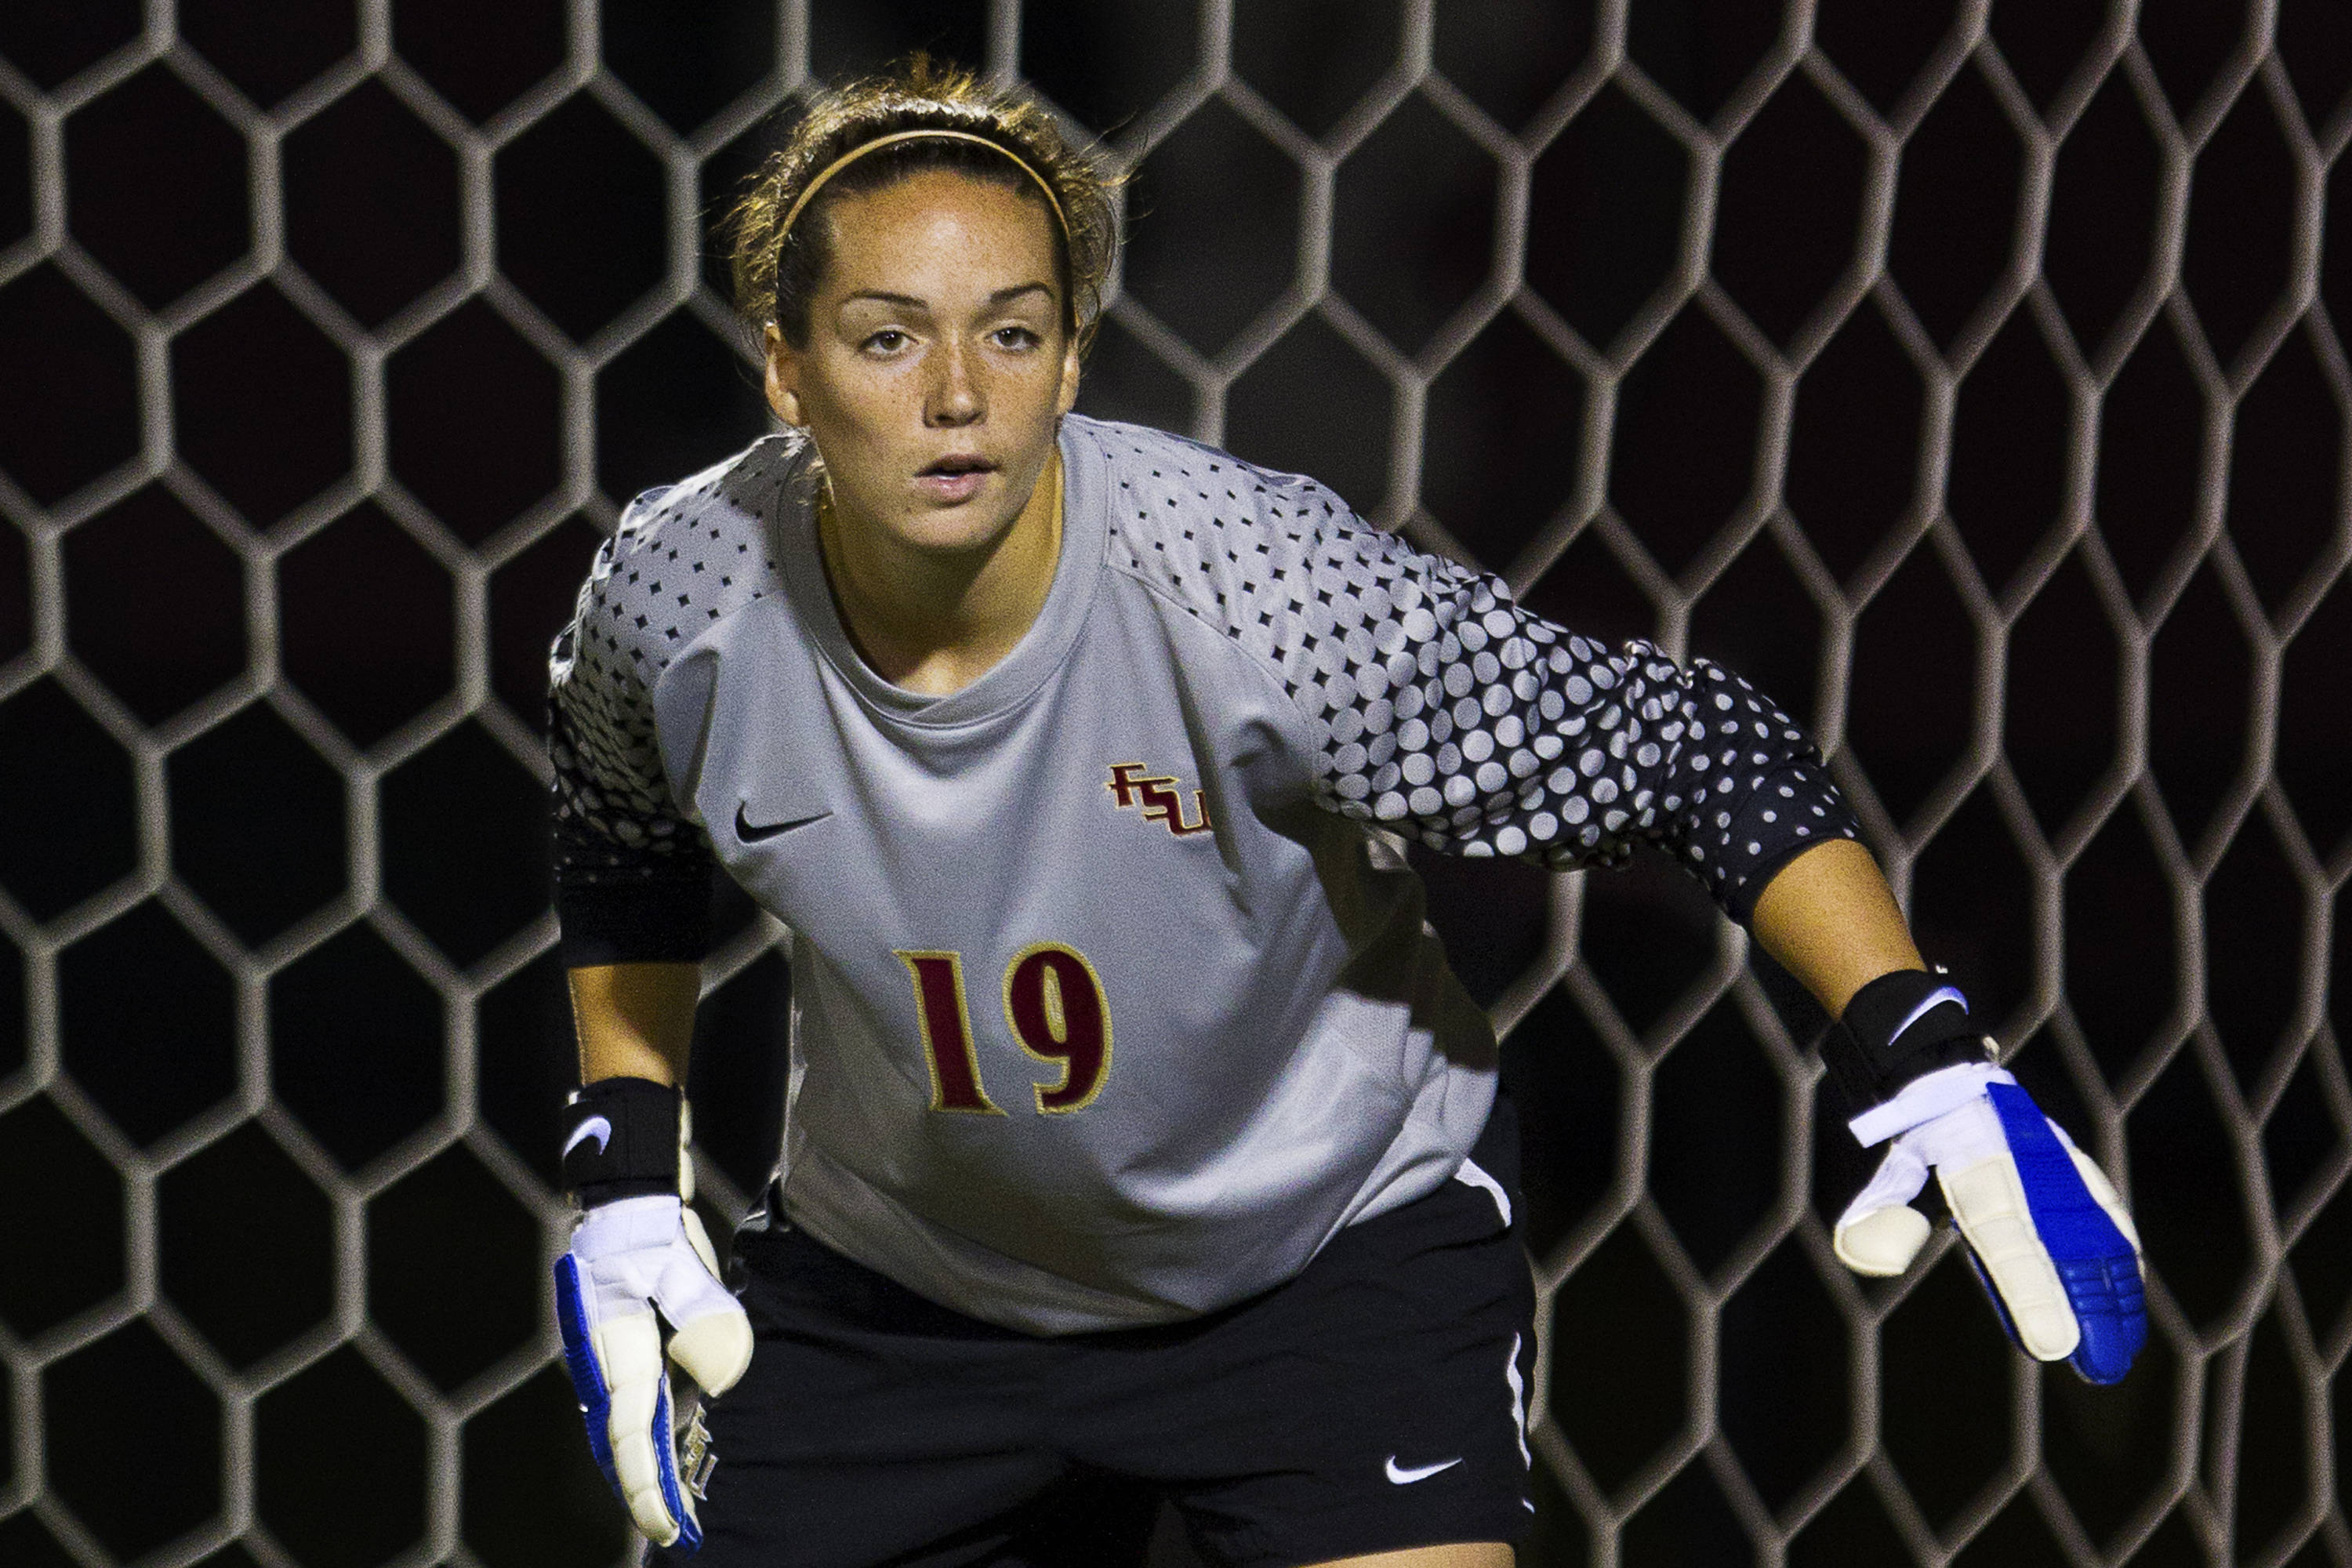 FSU keeper  Kelsey Wys (19) watches a Maryland striker carry the ball down the field during the game against Maryland on October 13, 2011.